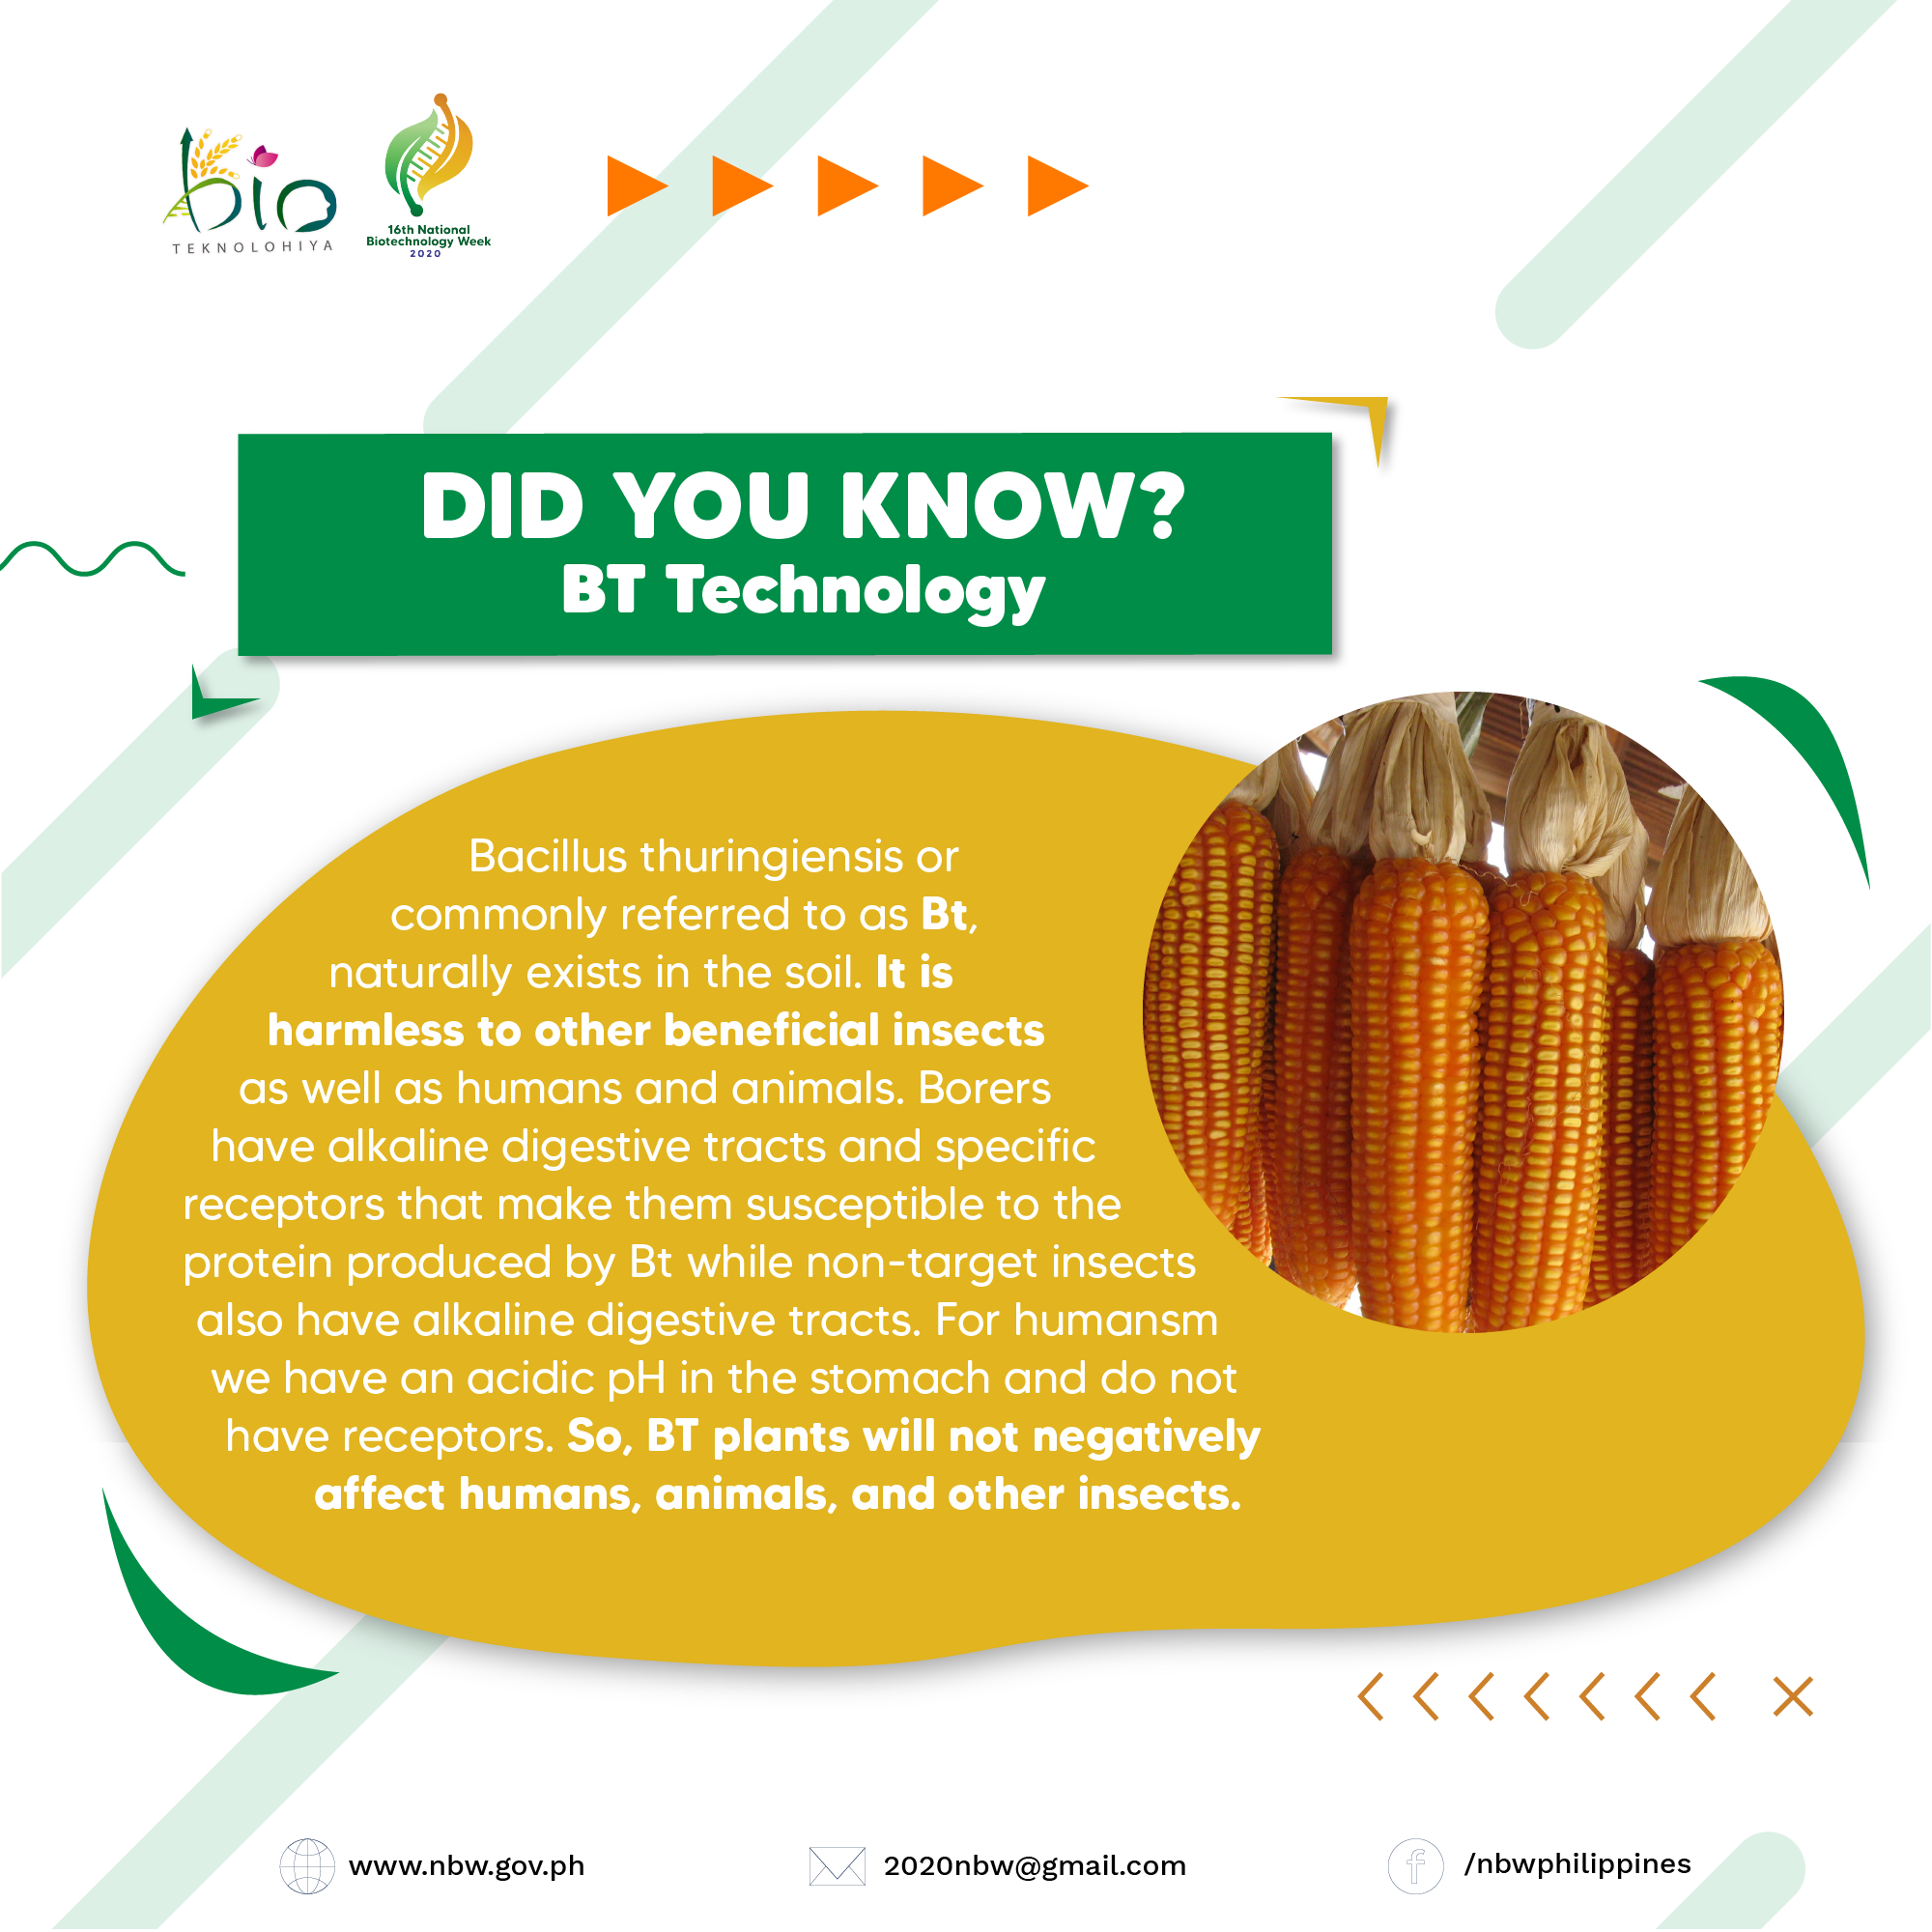 DID YOU KNOW - SEARCA-01